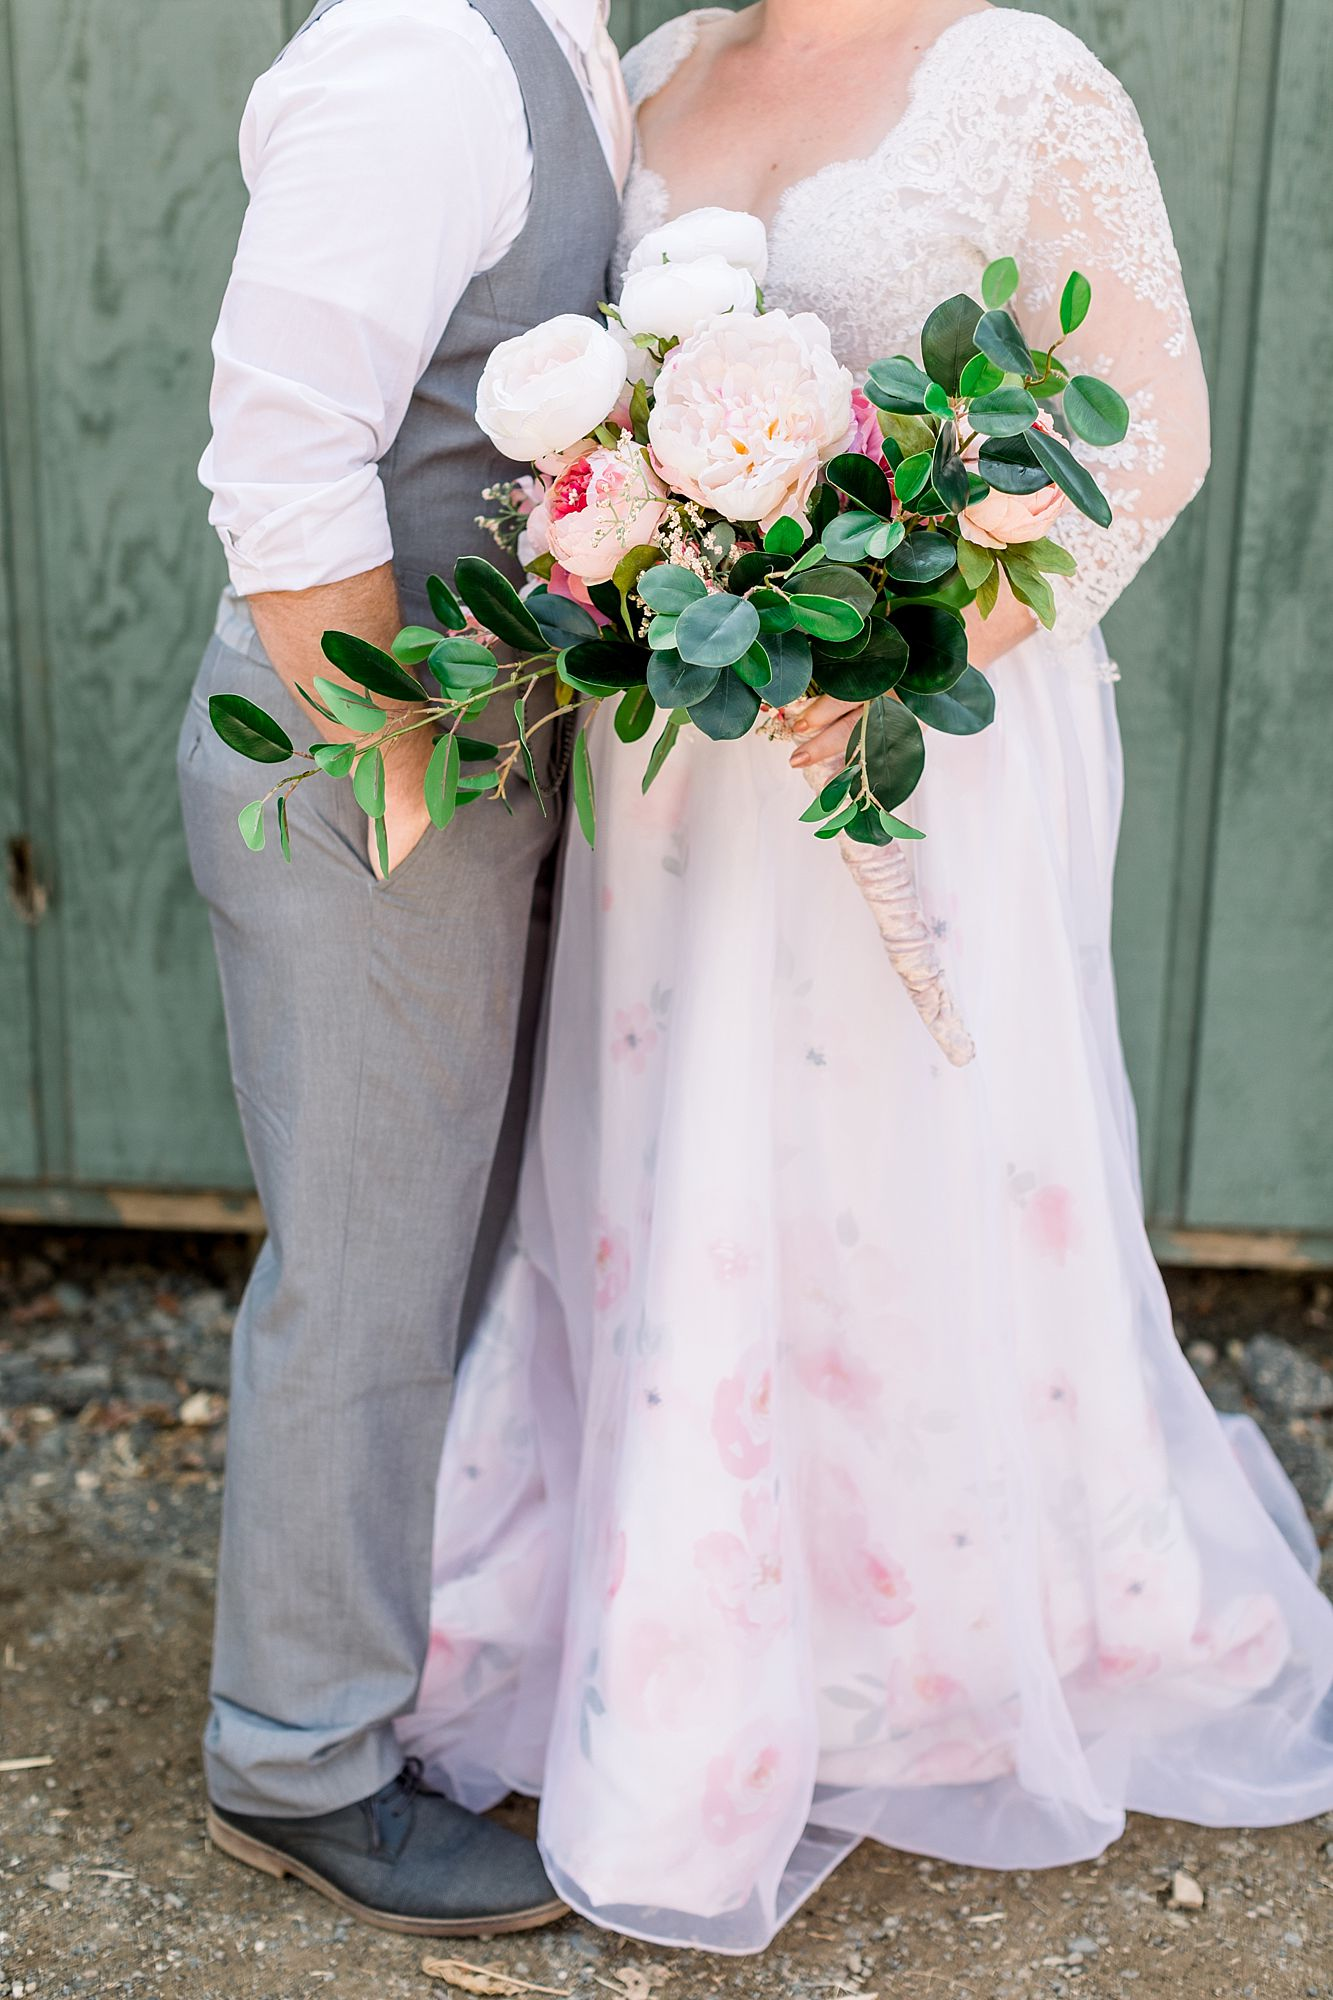 Bishops Pumpkin Farm Wedding - Annie and Logan - Ashley Baumgartner - Wheatland Wedding Photographer_0029.jpg